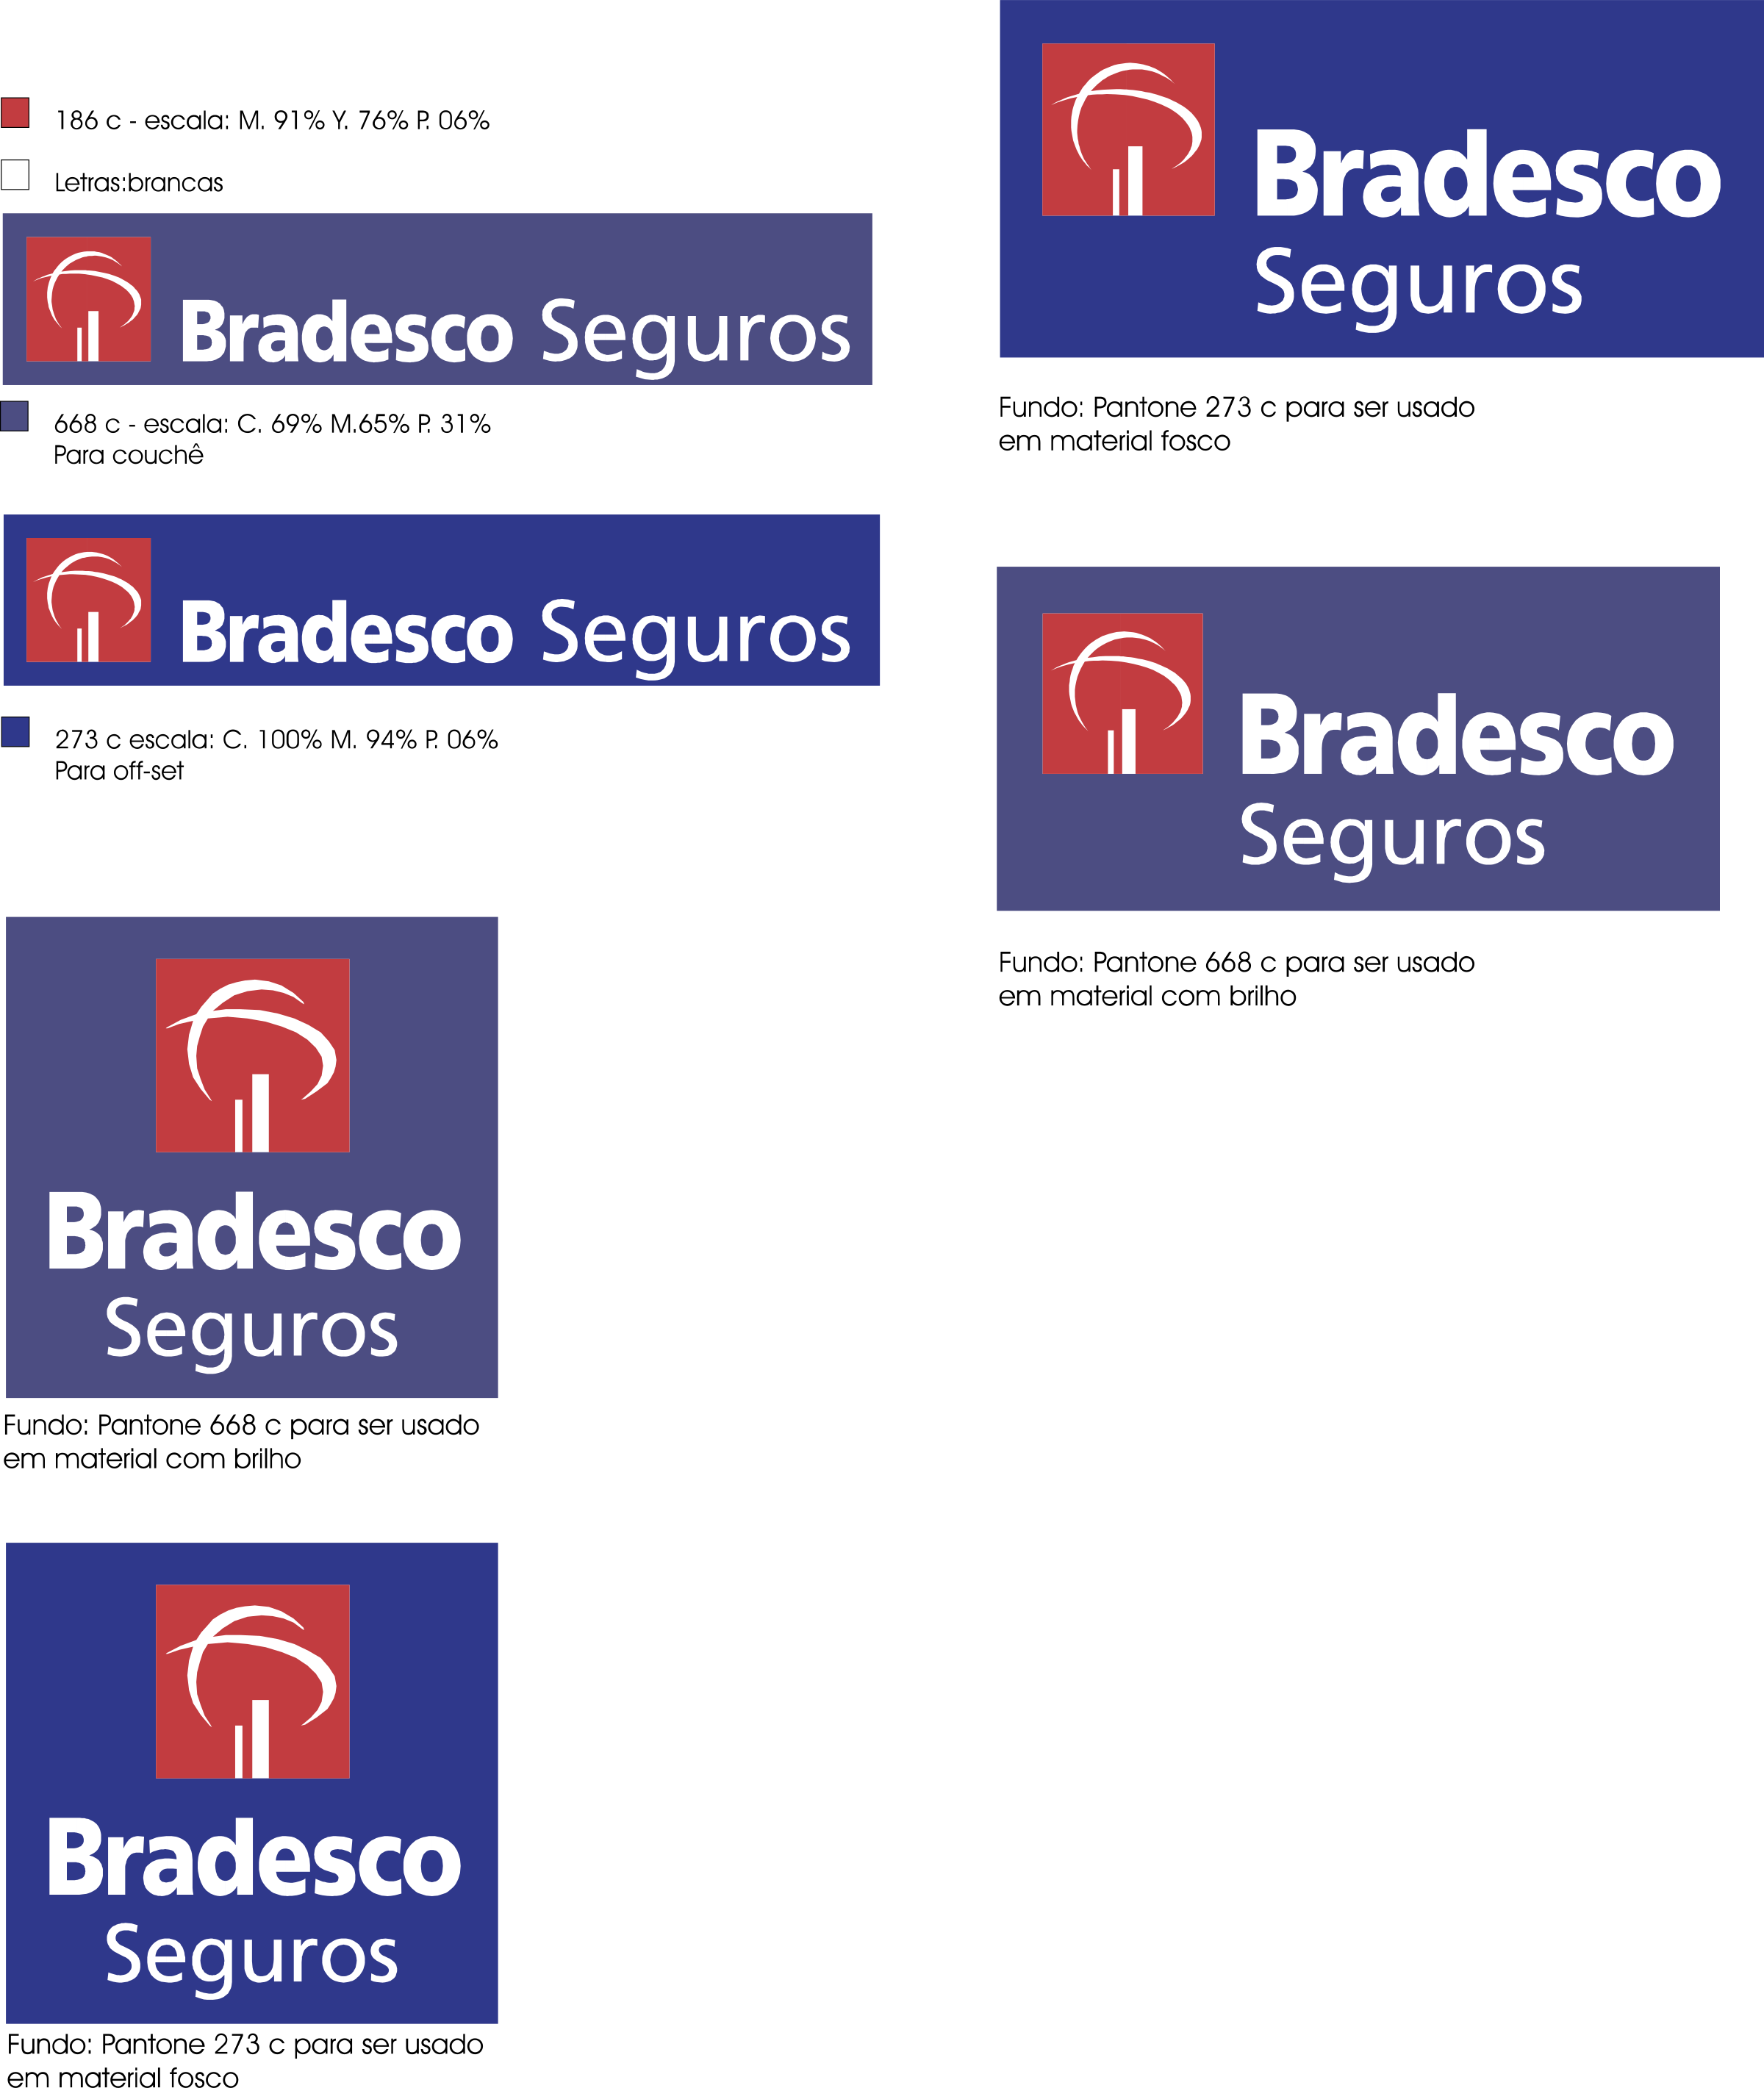 Bradesco Seguros Logo PNG Transparent & SVG Vector.